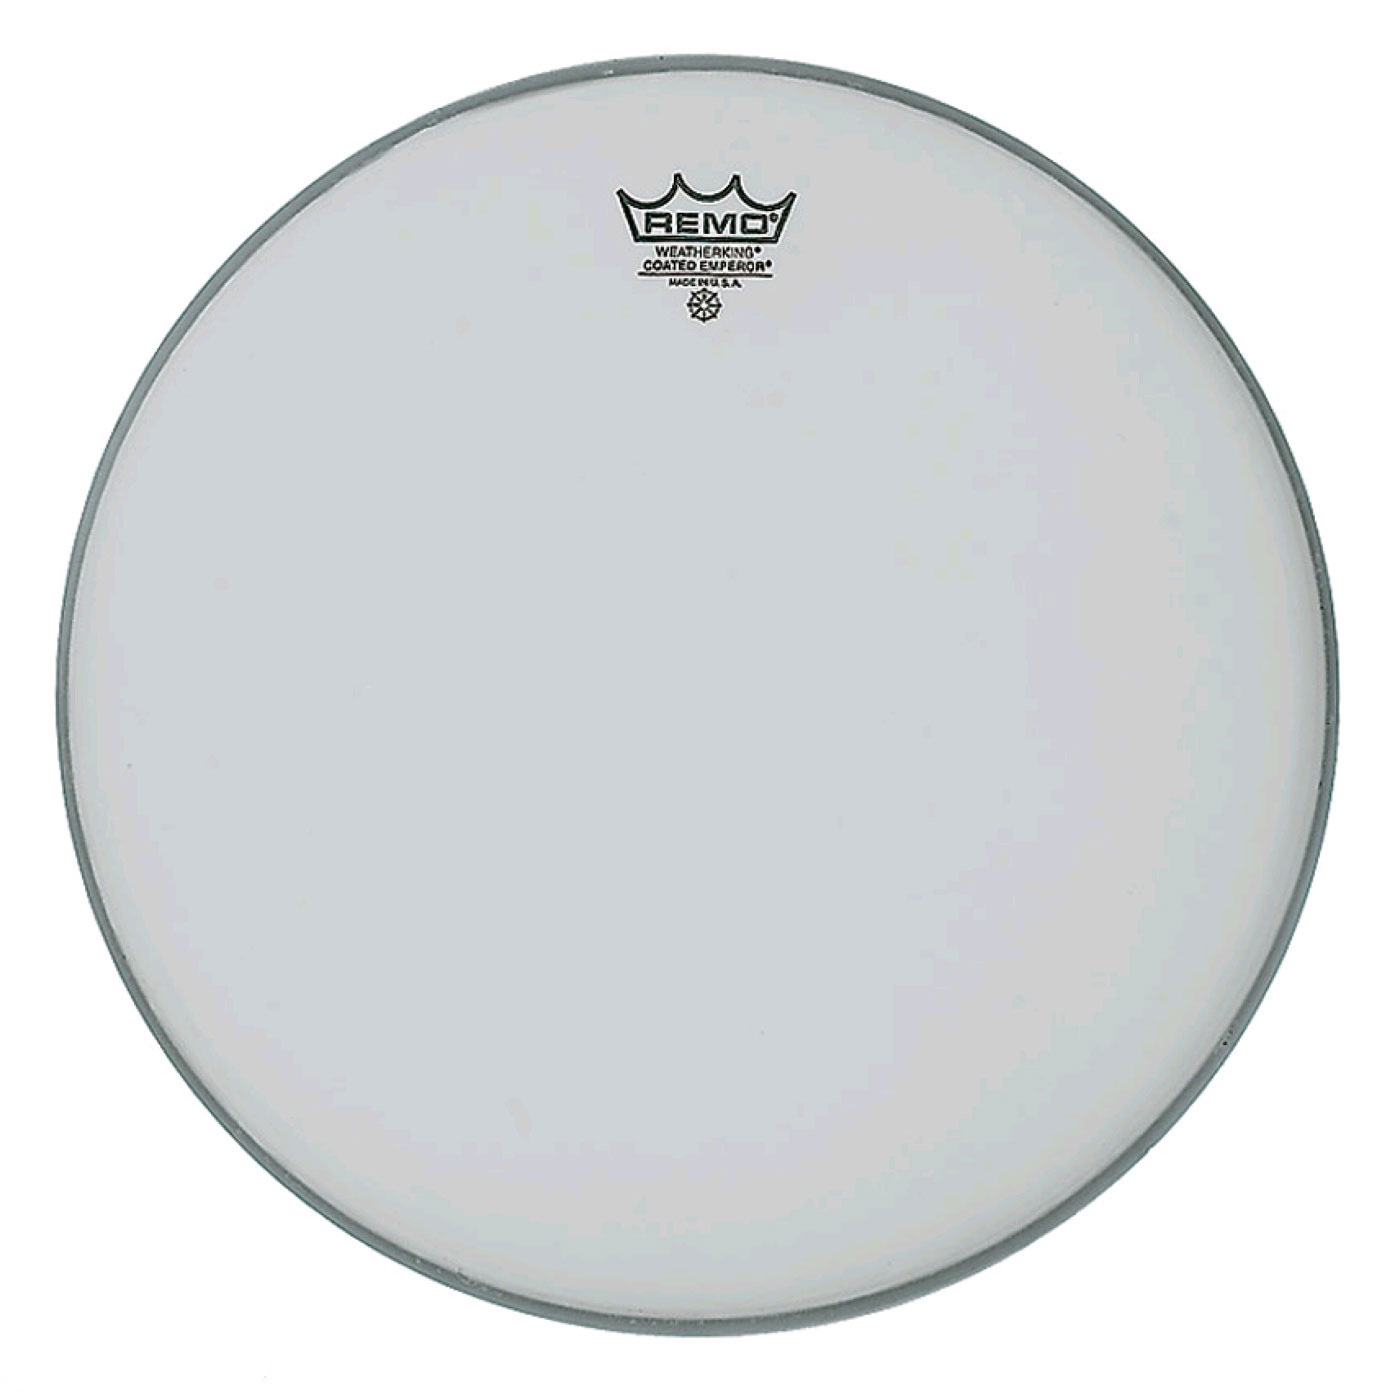 "Remo 13"" Emperor Coated Drum Head"